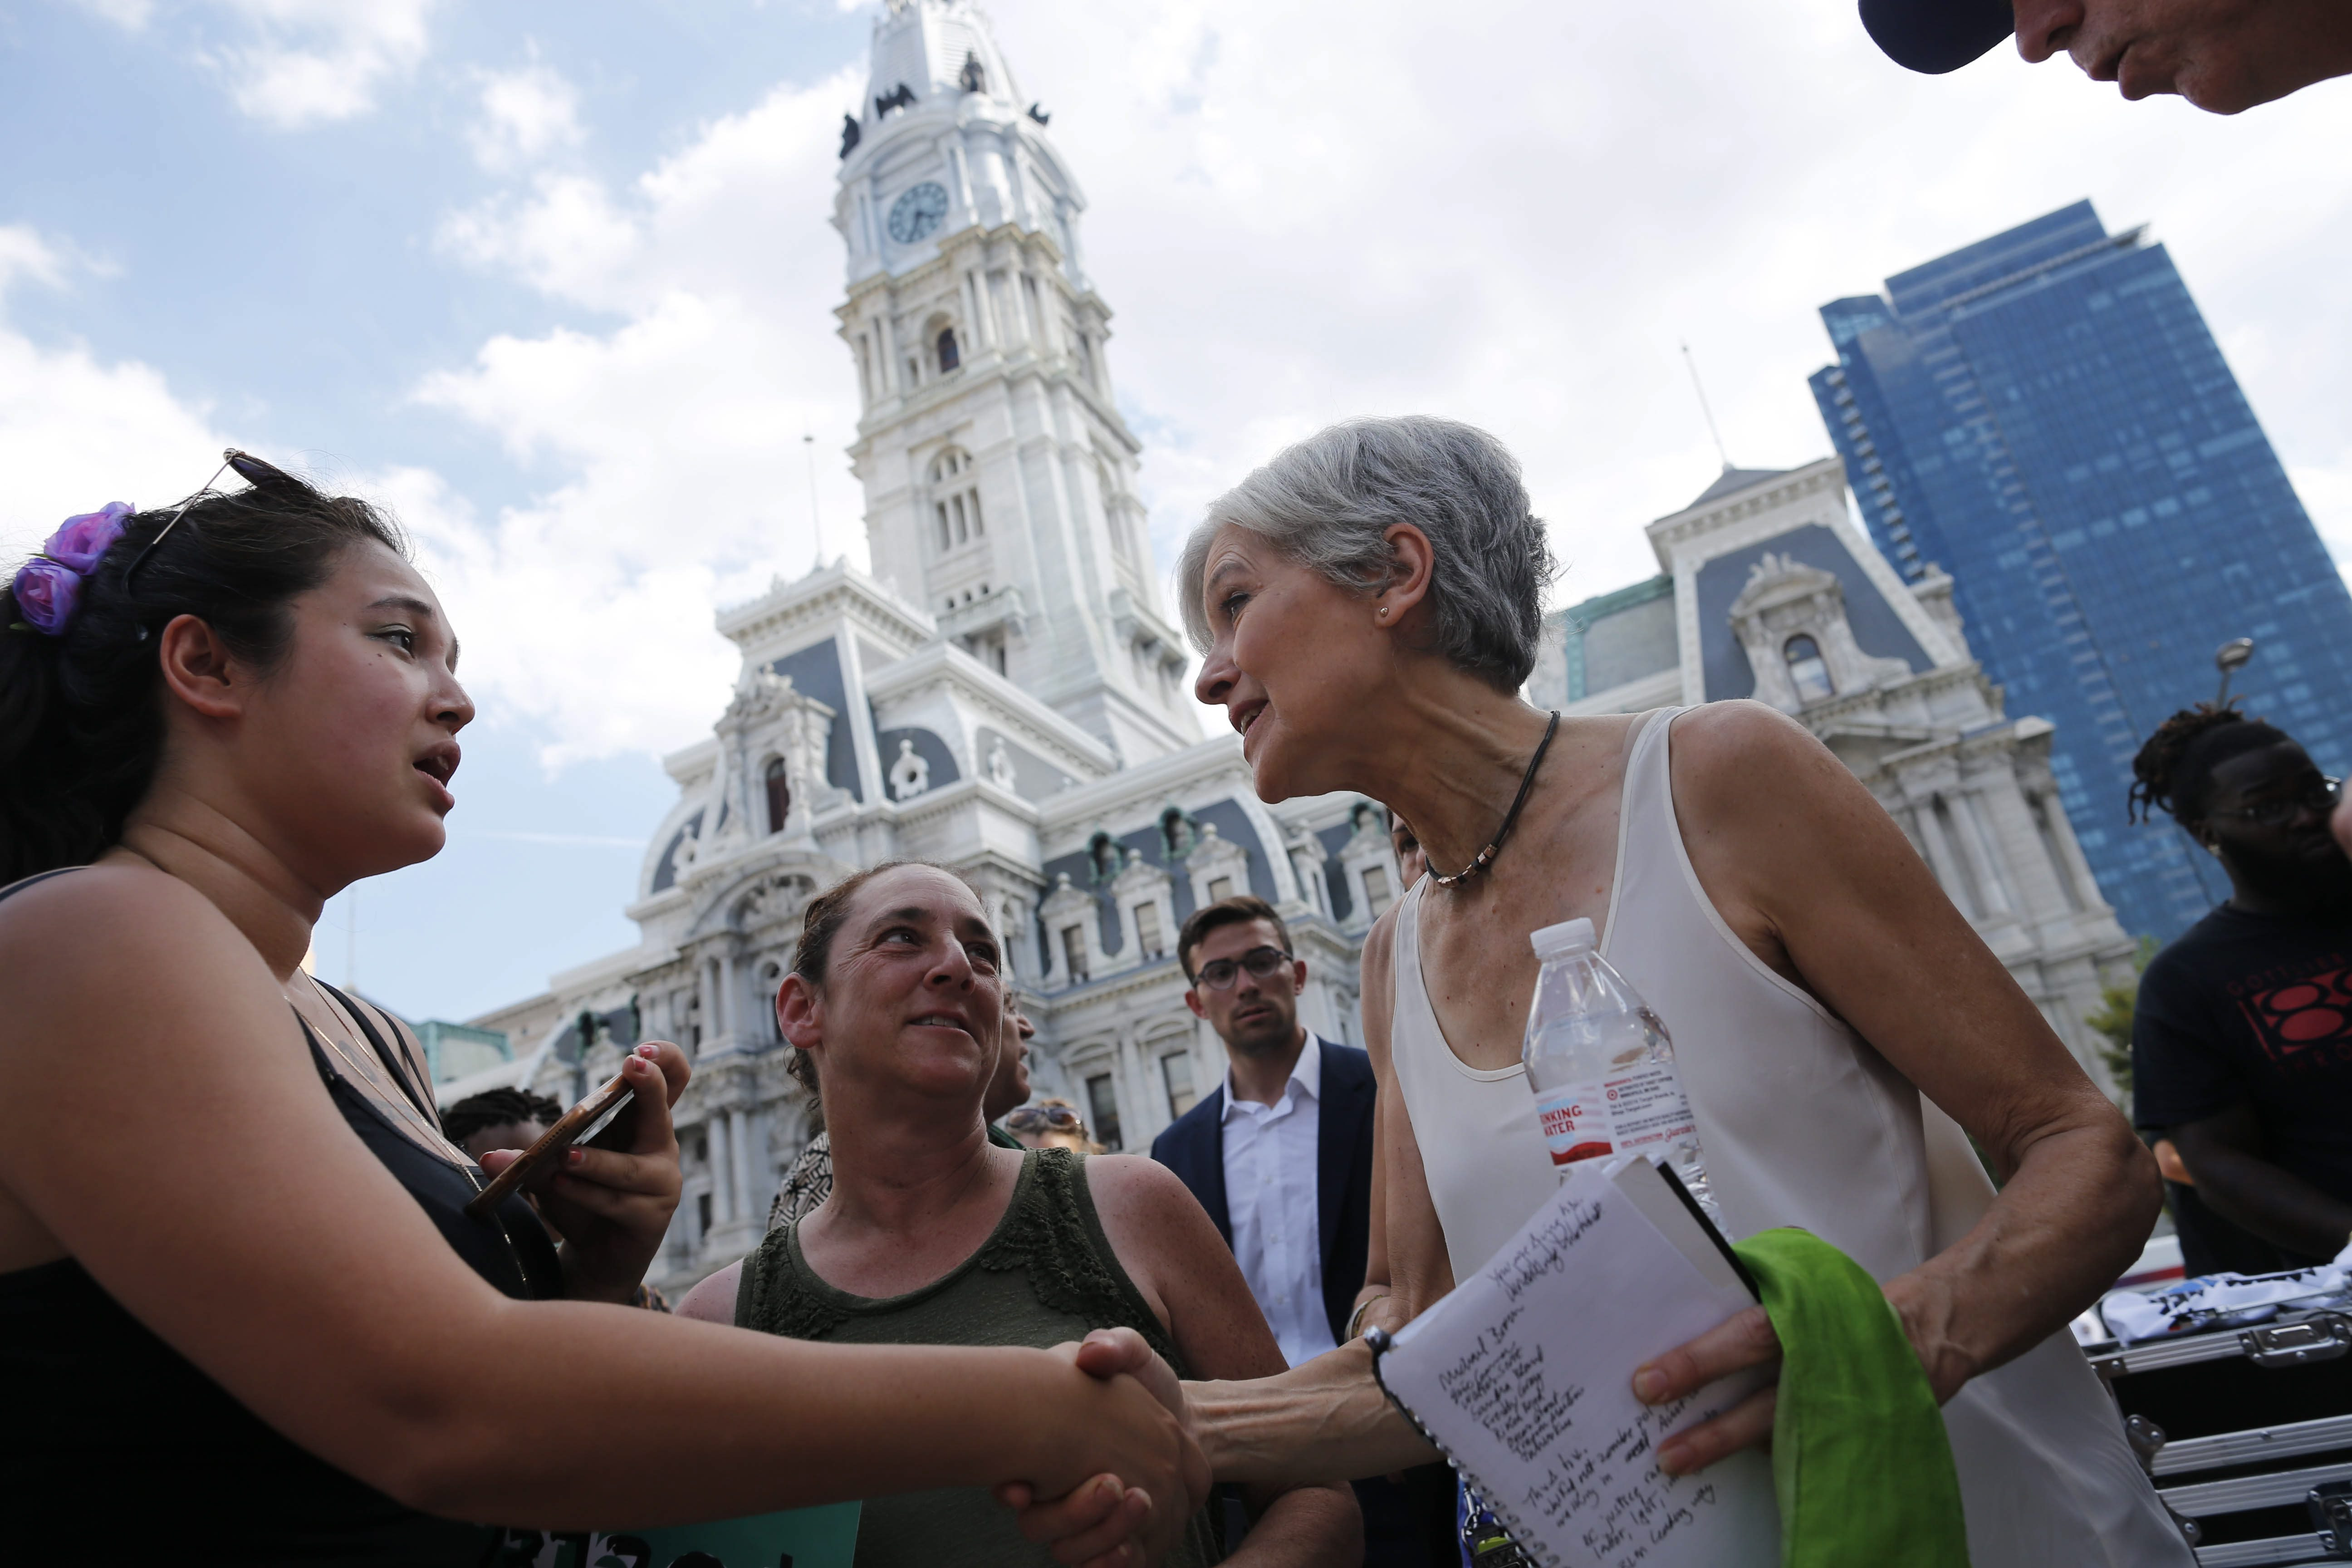 Jill Stein, the Green Party candidate for president, is leading efforts to mount vote recounts in at least one state. (Derek Gee/News file photo)